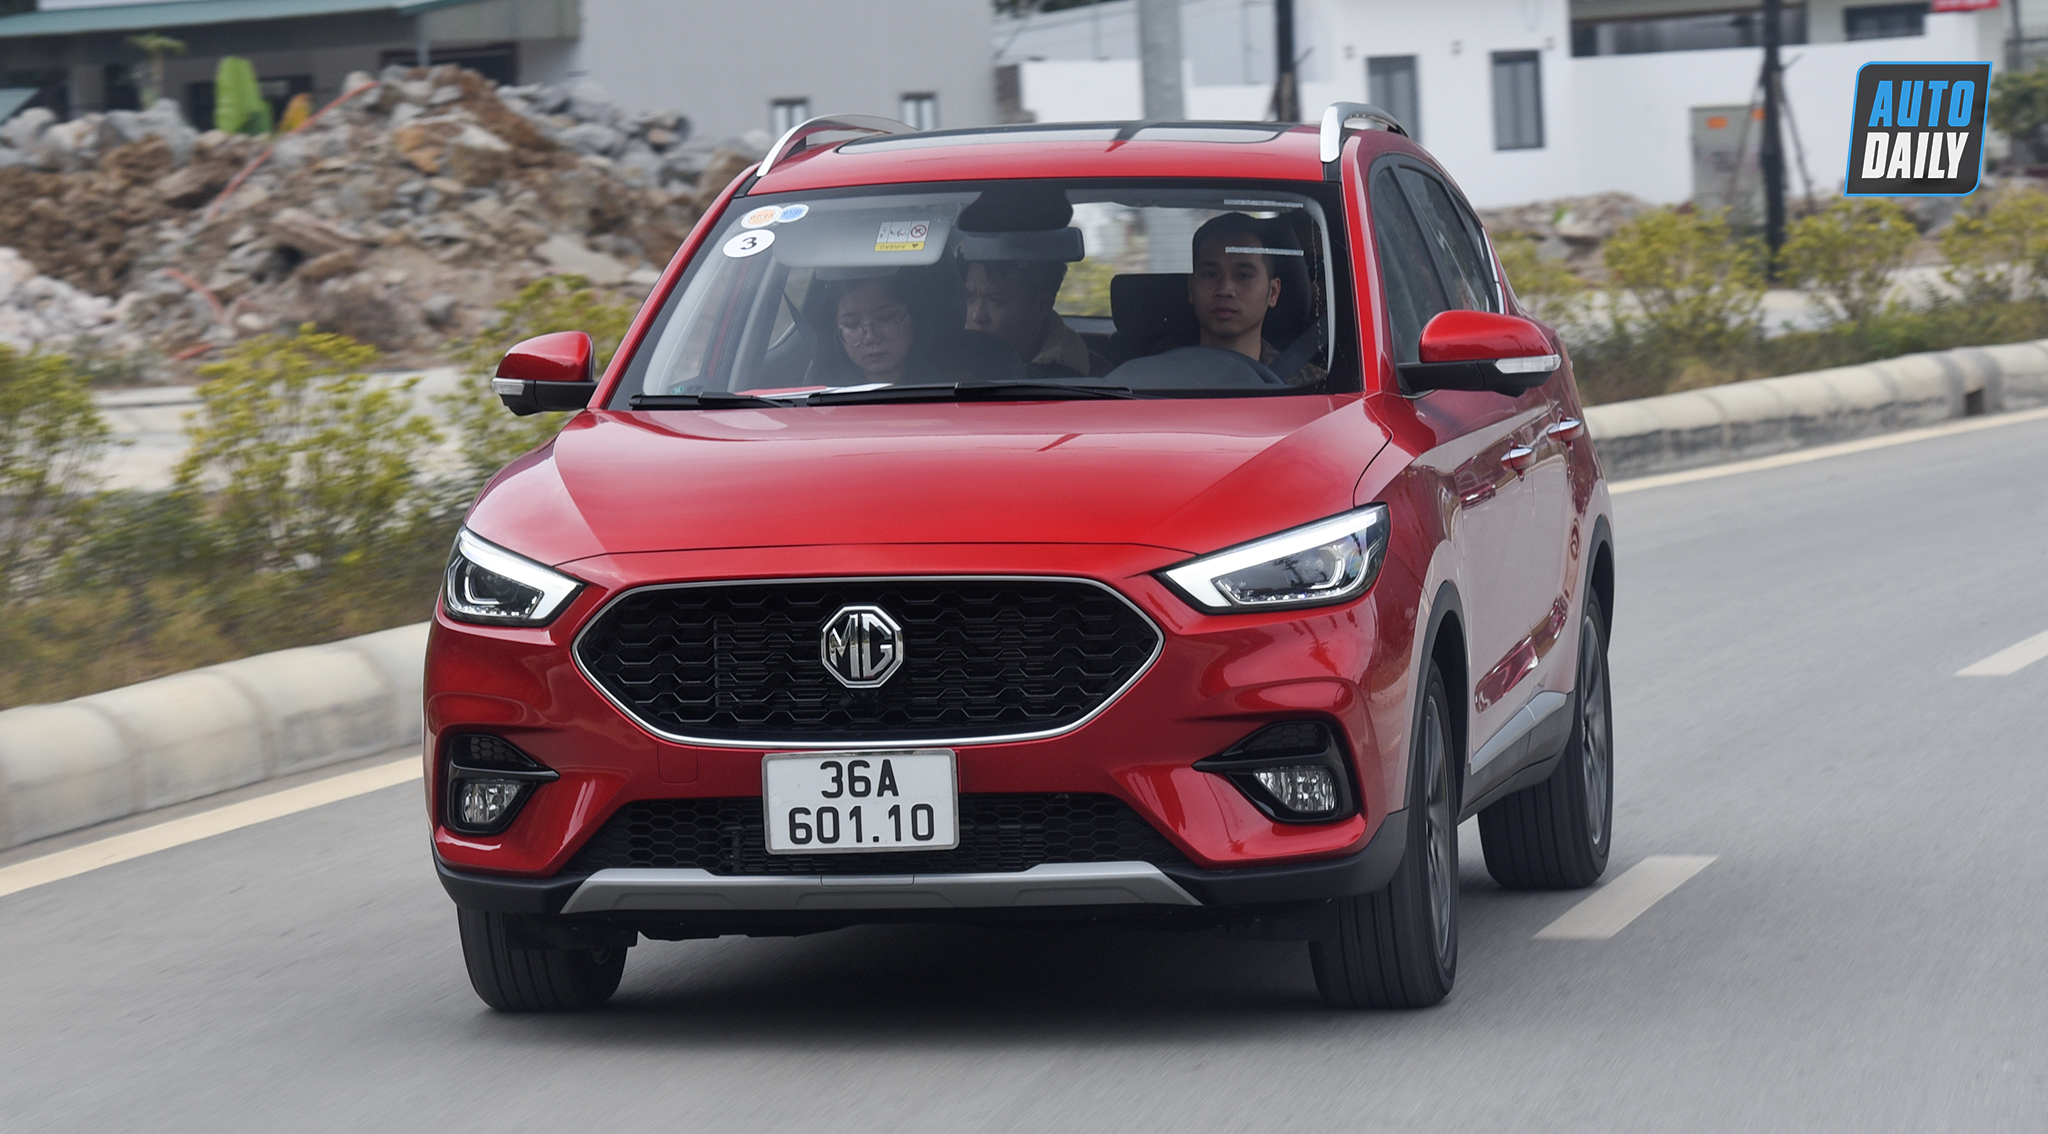 MG ZS 2021 evaluation: A reasonable choice of 16.jpg price range of 600 million VND